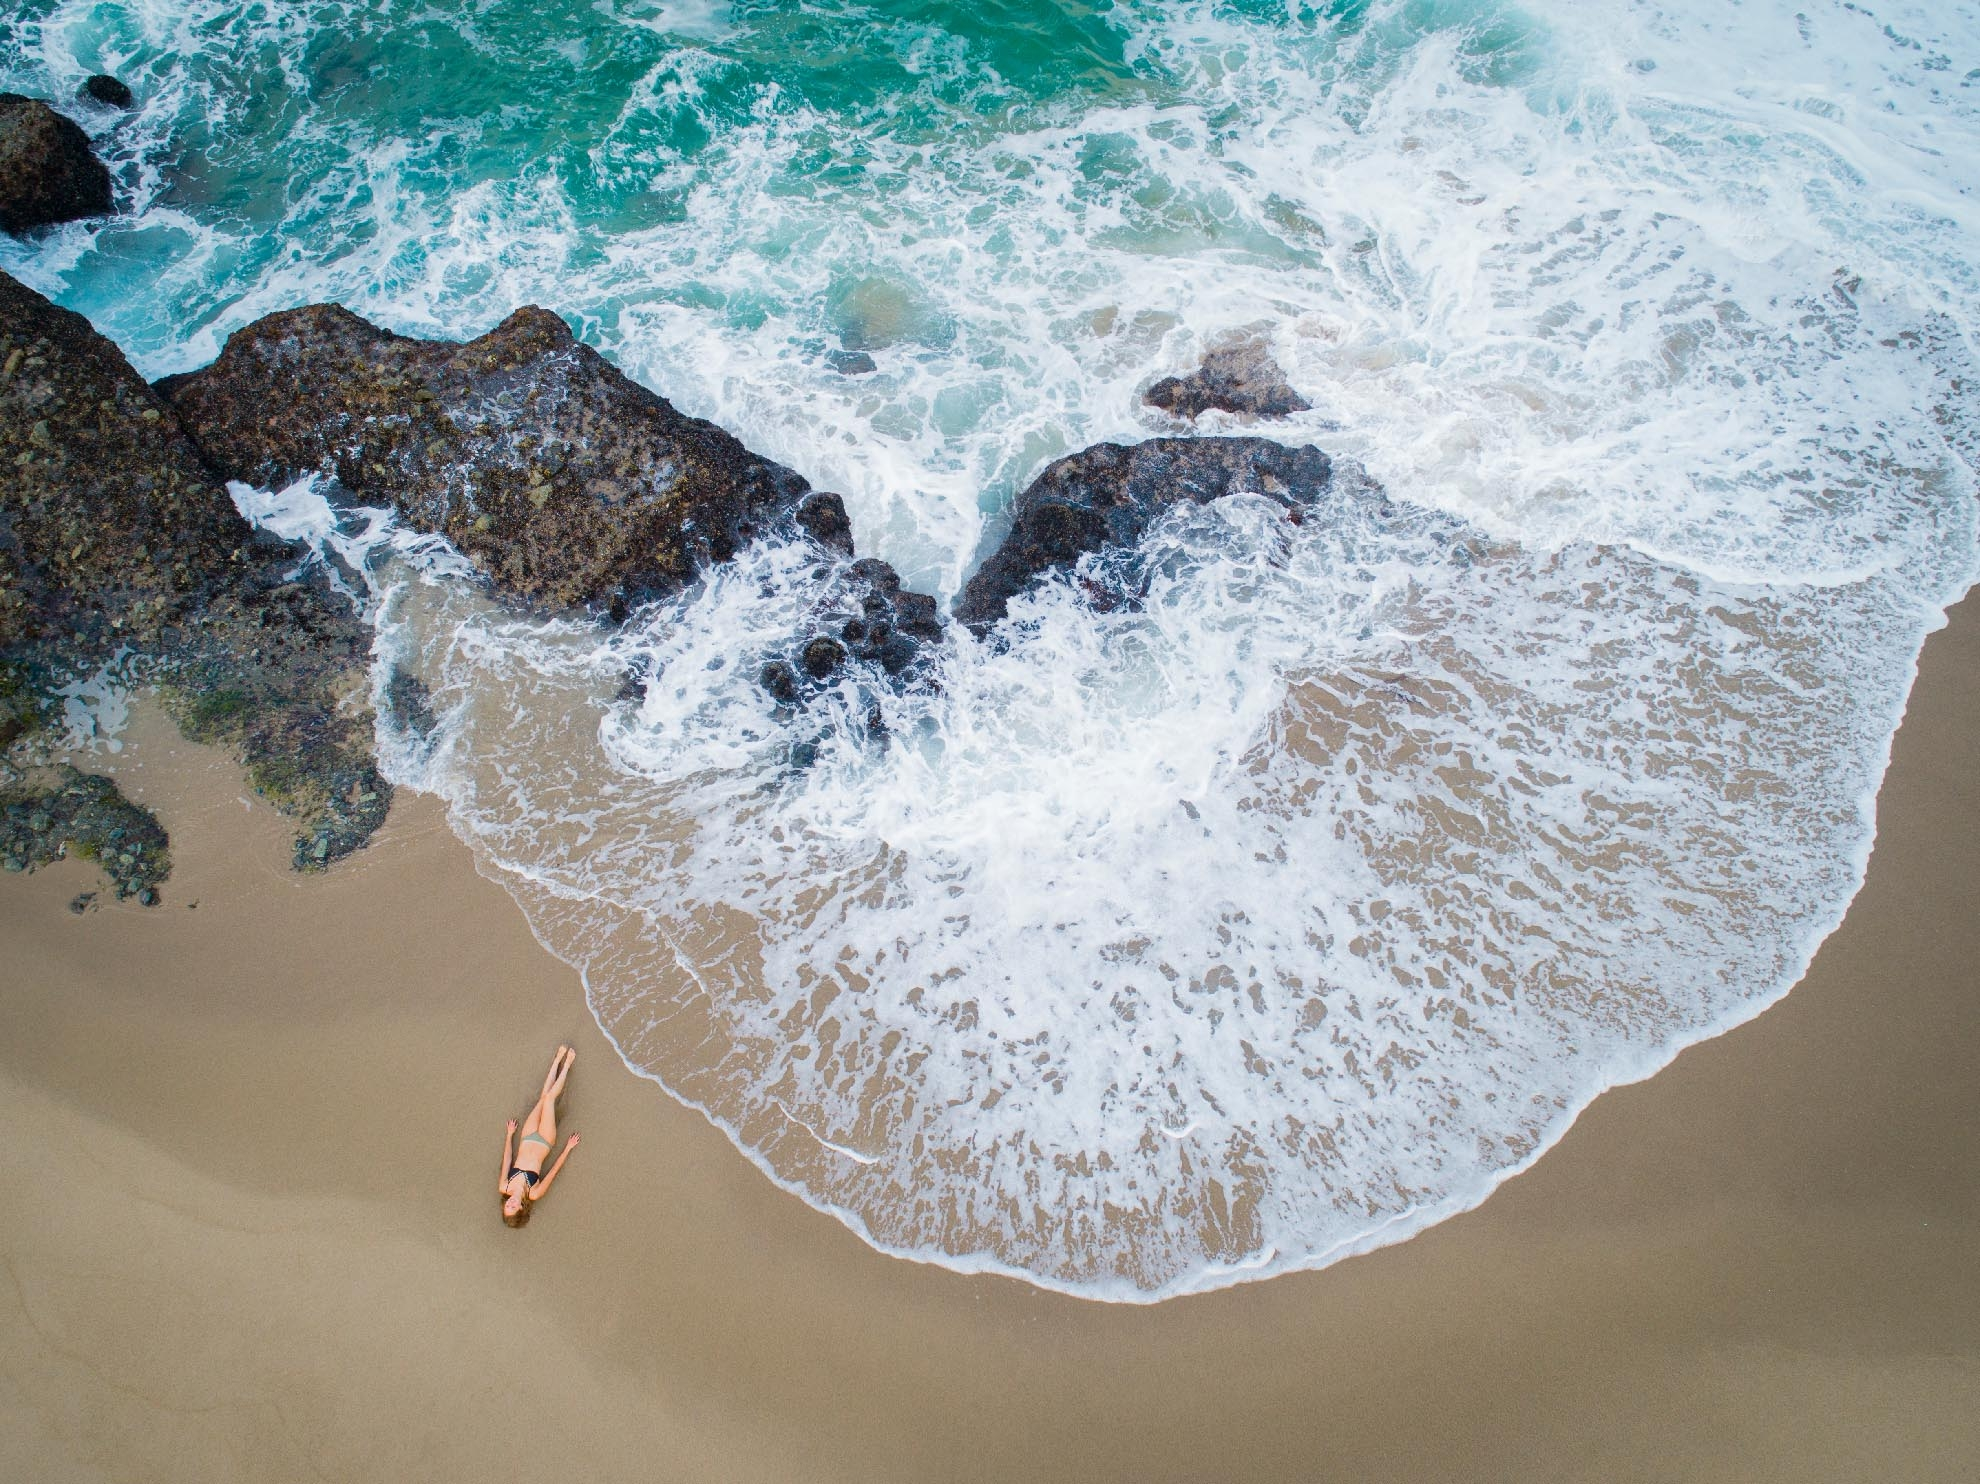 Drone Photograph of birds eye view of woman lying on Table Rock beach California in a bikini